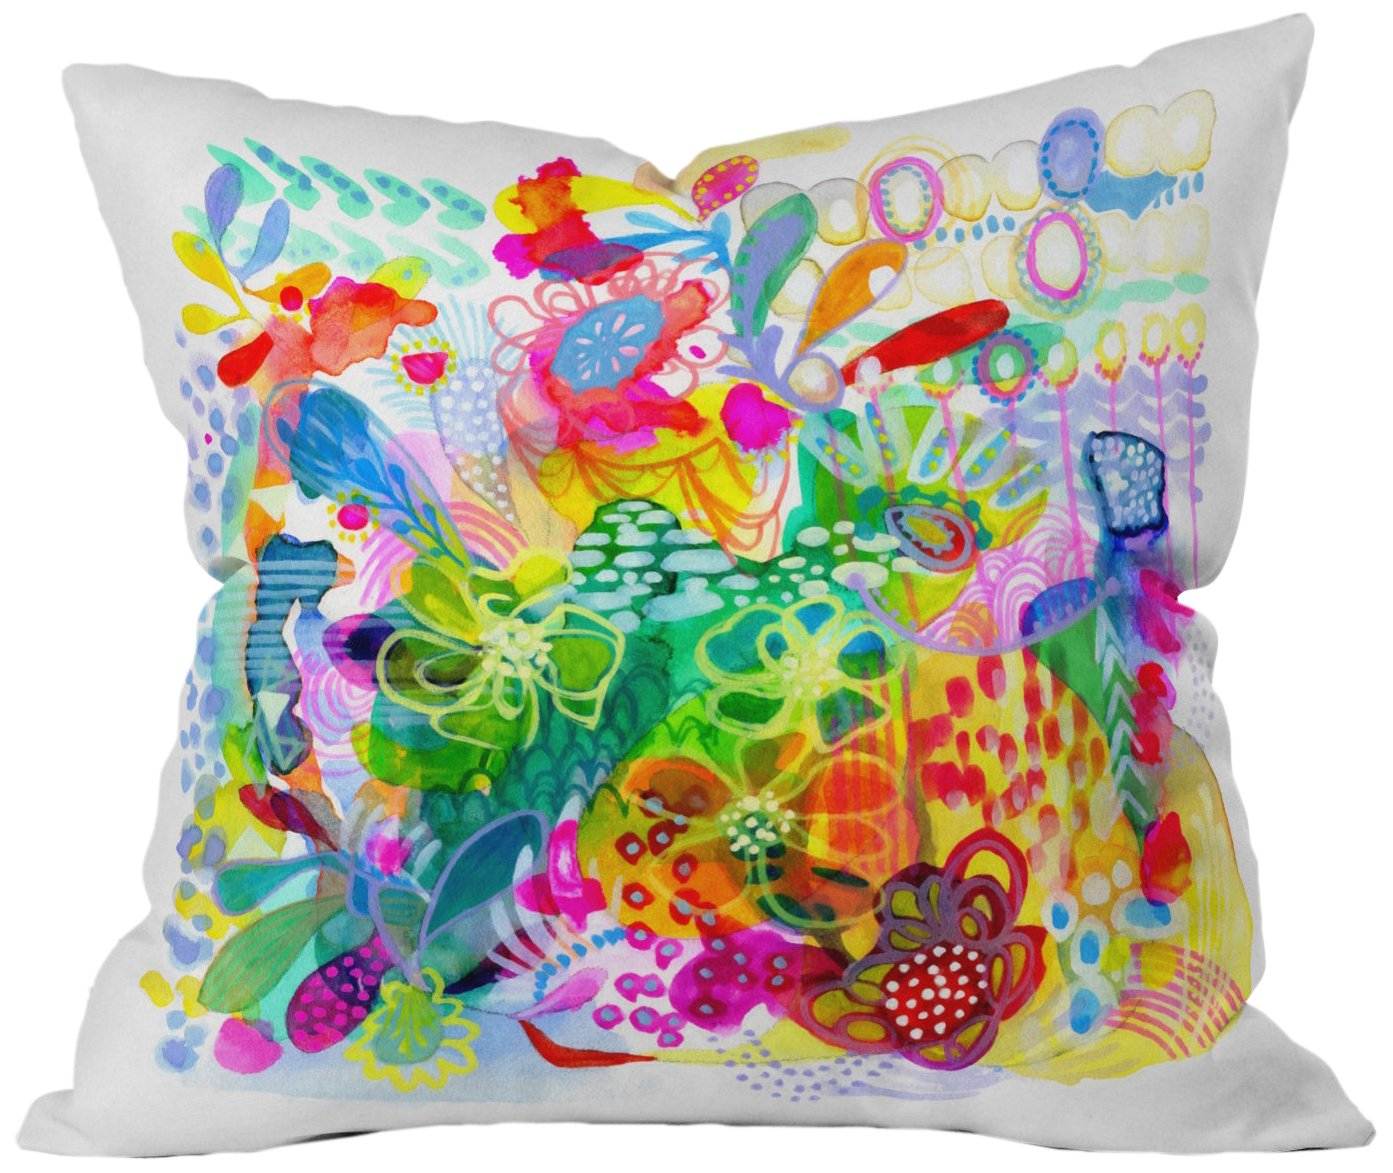 Funky Cool Unique Modern Colorful Throw Pillows ? SKARRO ? Be Fun ? Live Life in Color